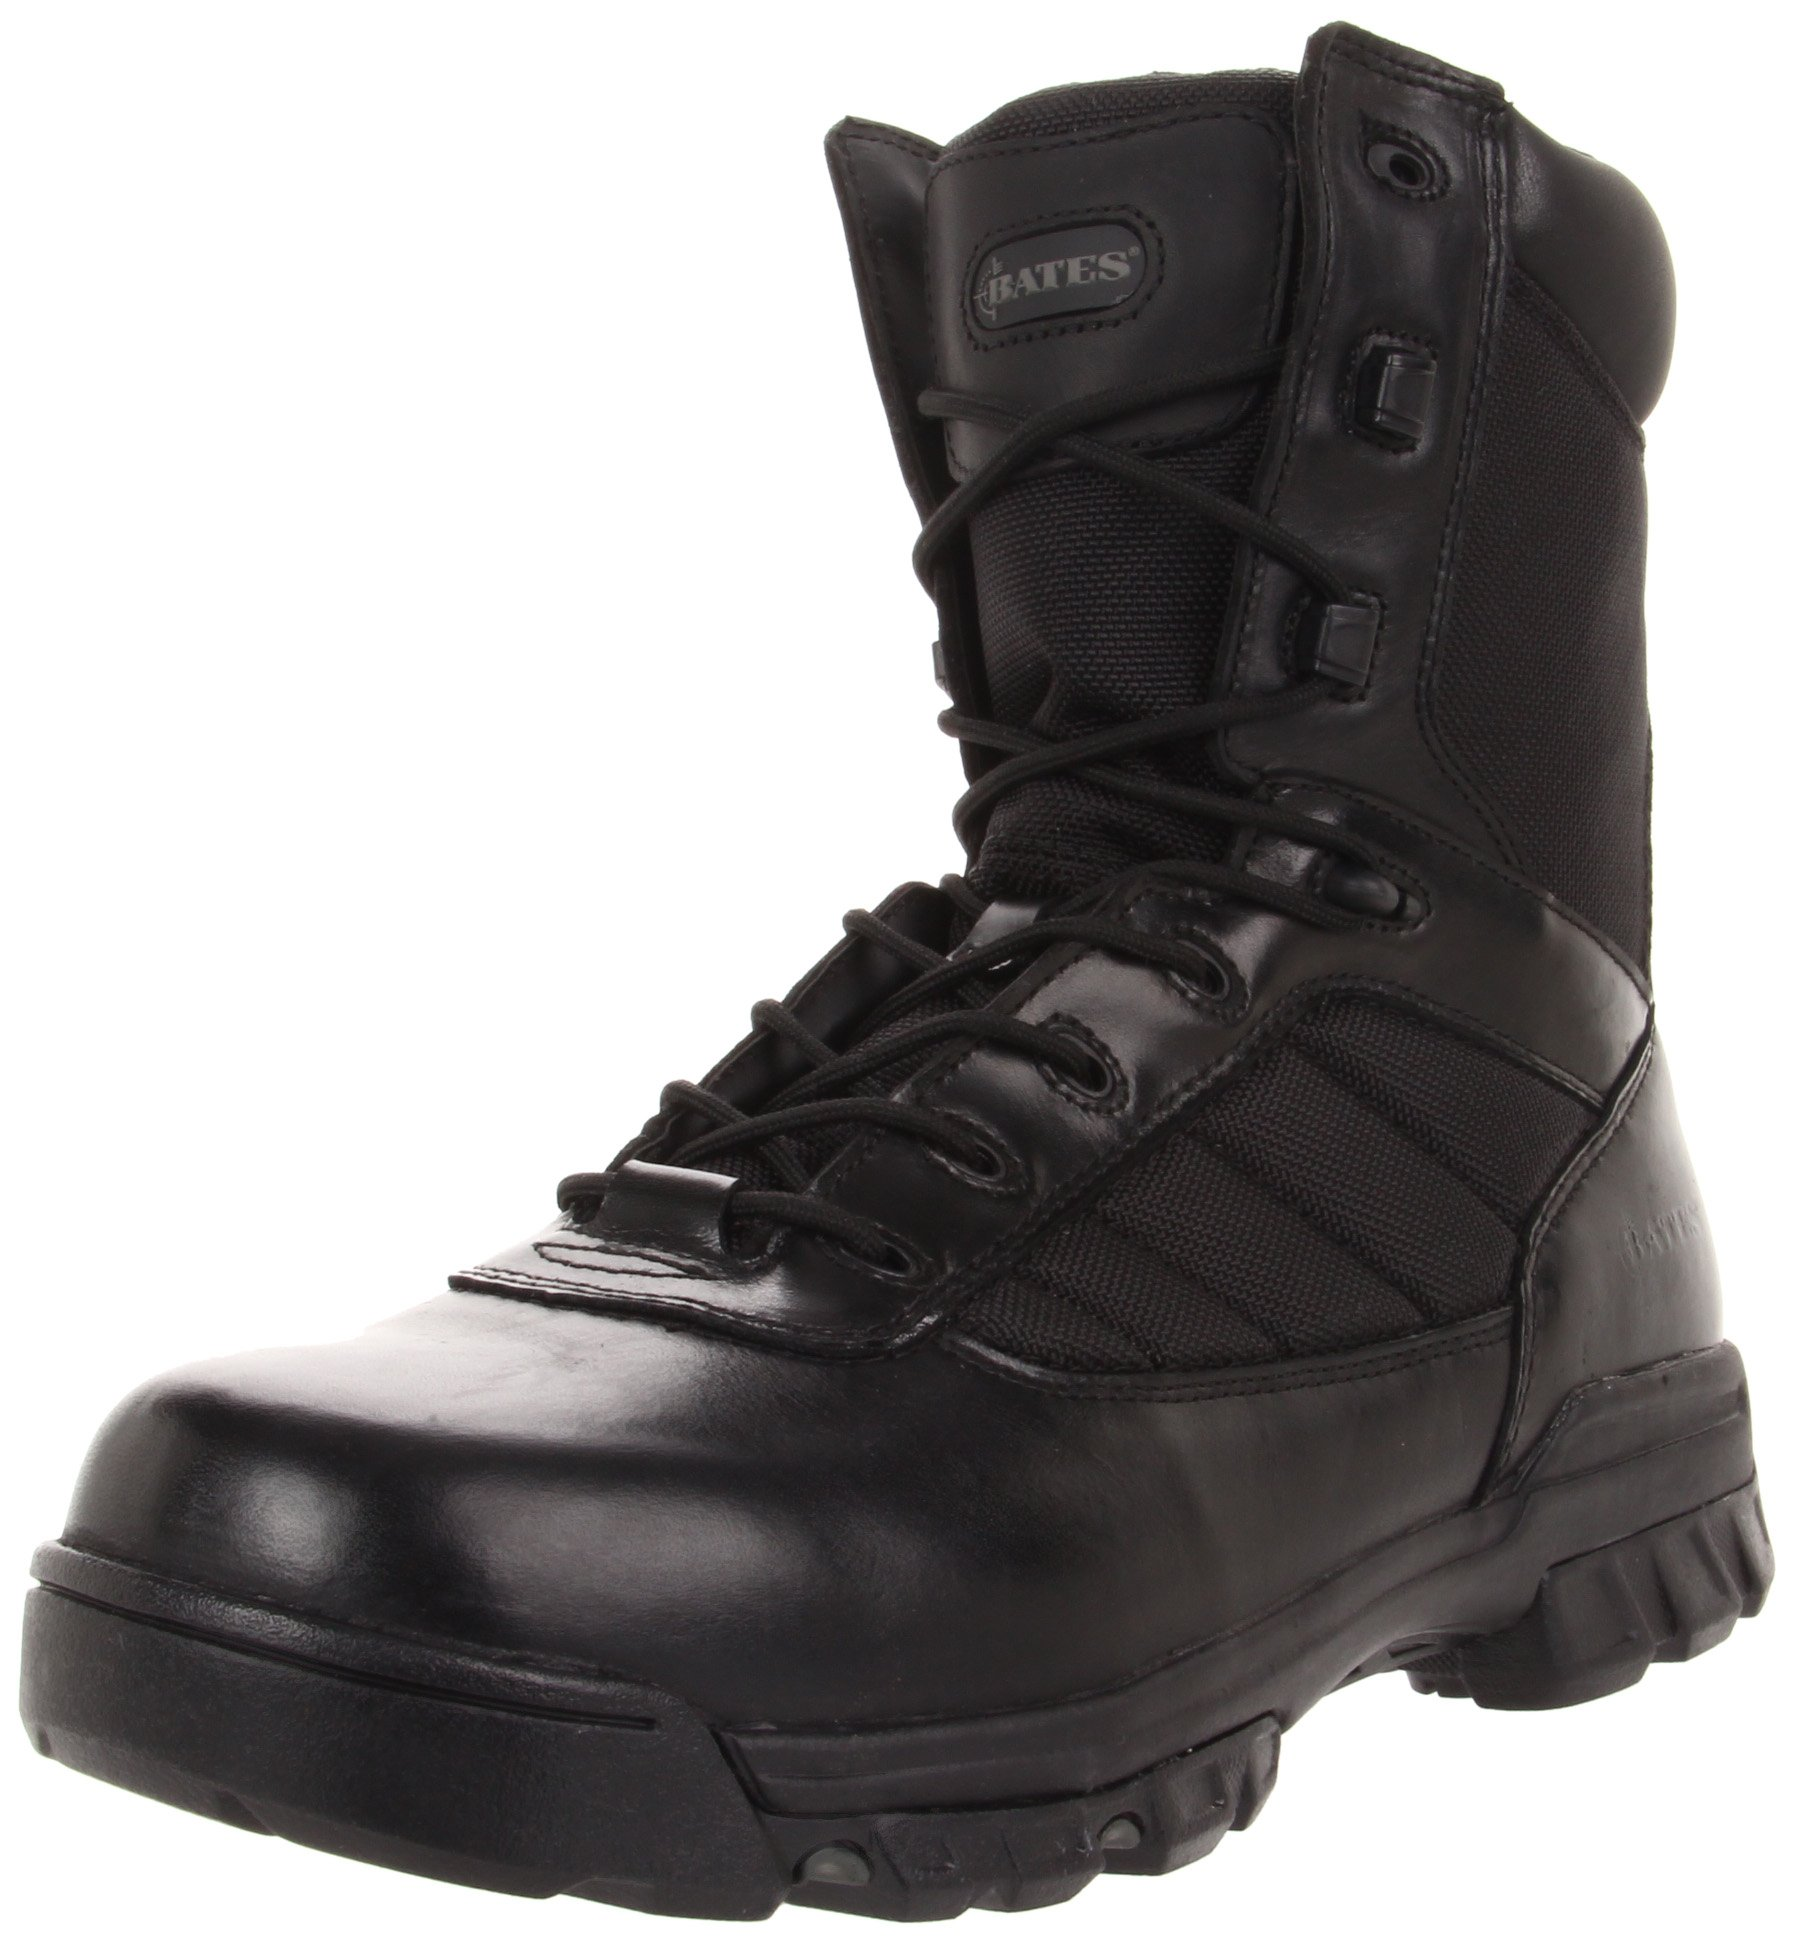 Bates Men's Ultra-Lites 8 Inches Tactical Sport Side Zip Work Boot,Black,12 M US by Bates